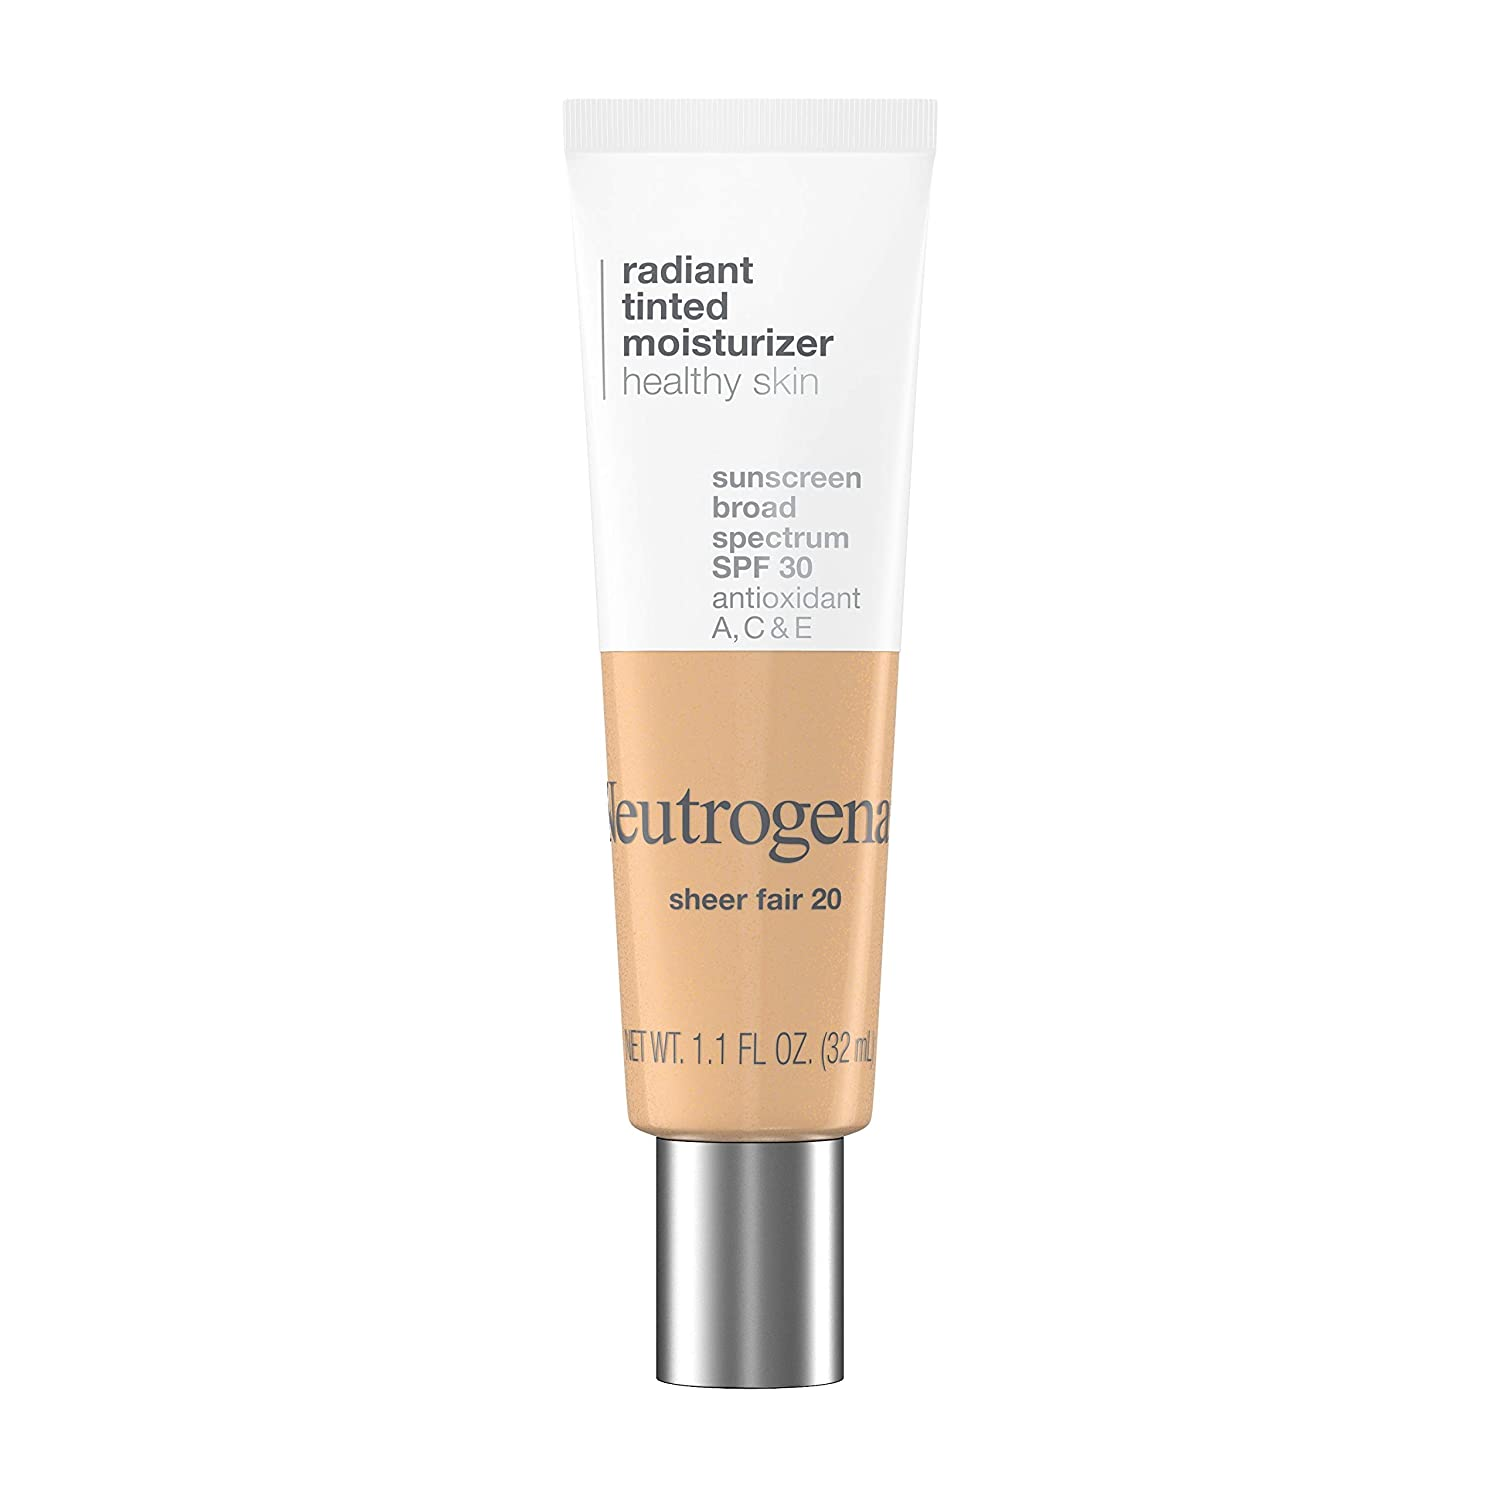 Neutrogena Healthy Skin Radiant Tinted Facial Moisturizer with Broad Spectrum SPF 30 Sunscreen Vitamins A, C, & E, Lightweight, Sheer, & Oil-Free Coverage, Sheer Fair 20, 1.1 fl. oz